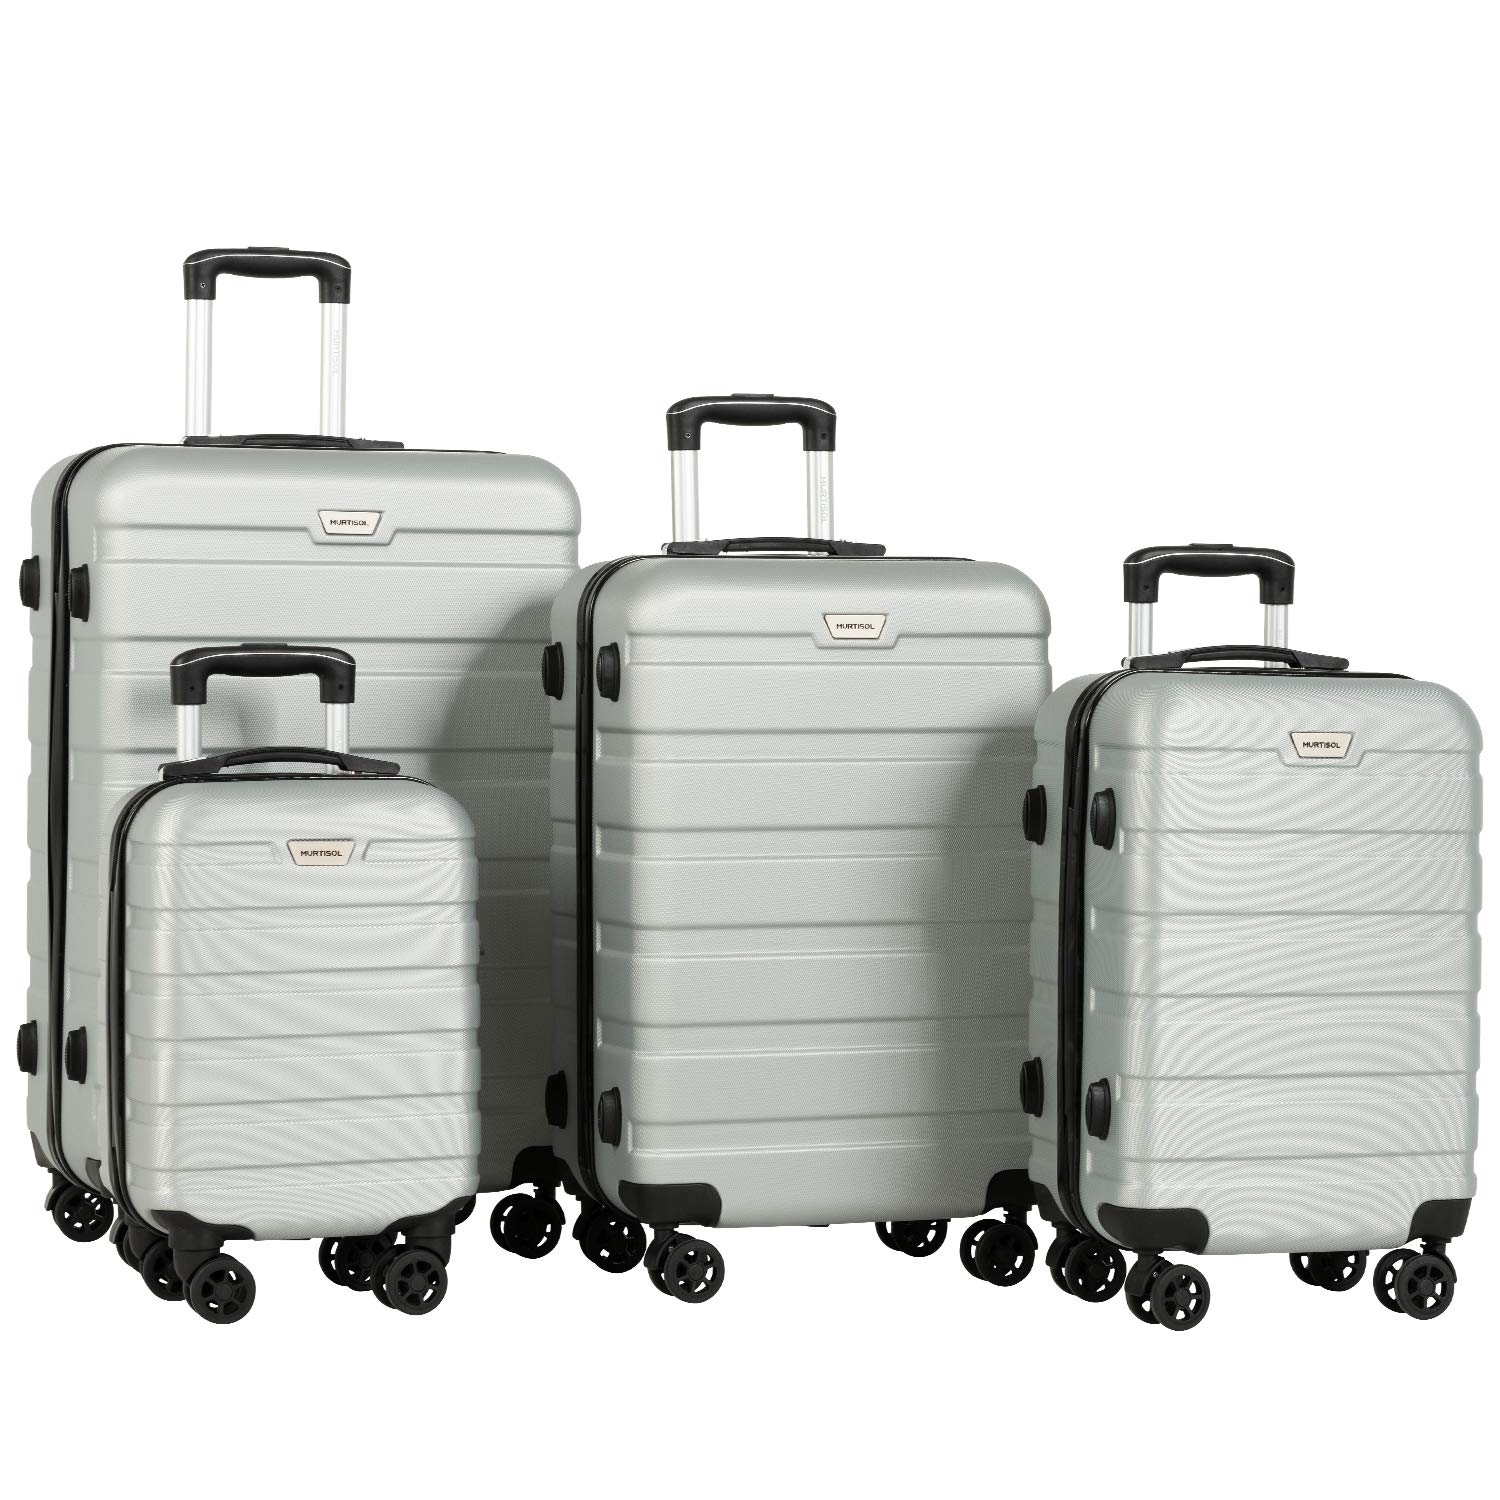 Murtisol 4 Pieces ABS Luggage Sets TSA Lightweight Durable Spinner Suitcase Aluminum Retractable Handle 16'' 20'' 24'' 28'', 4PCS Sliver by Murtisol